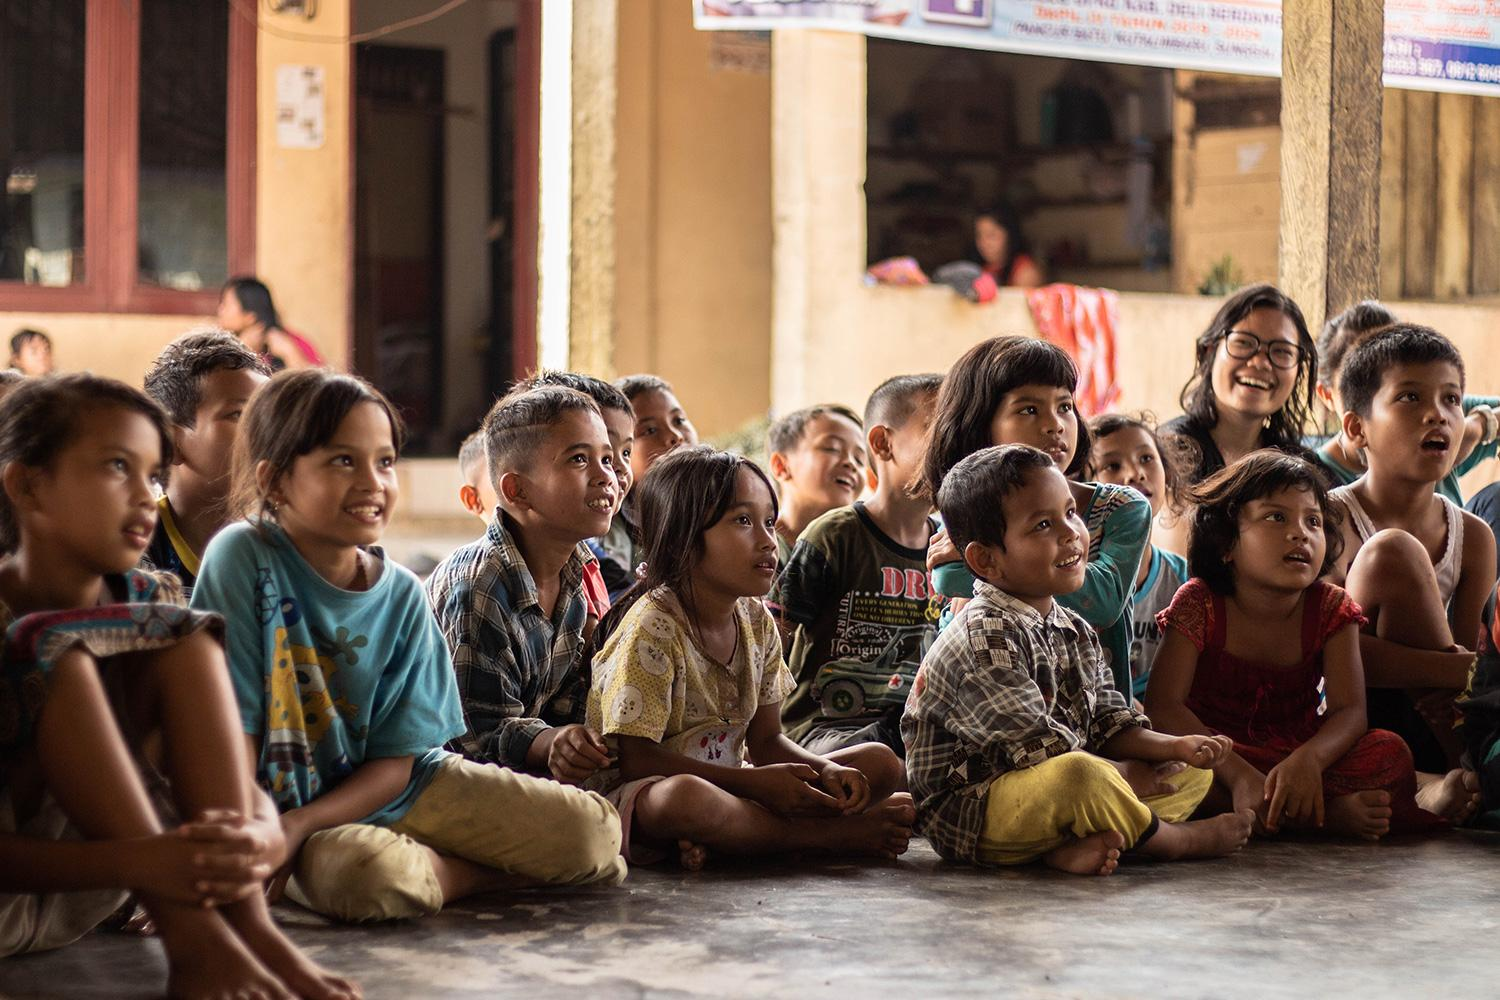 Children in poverty sitting and listening to story